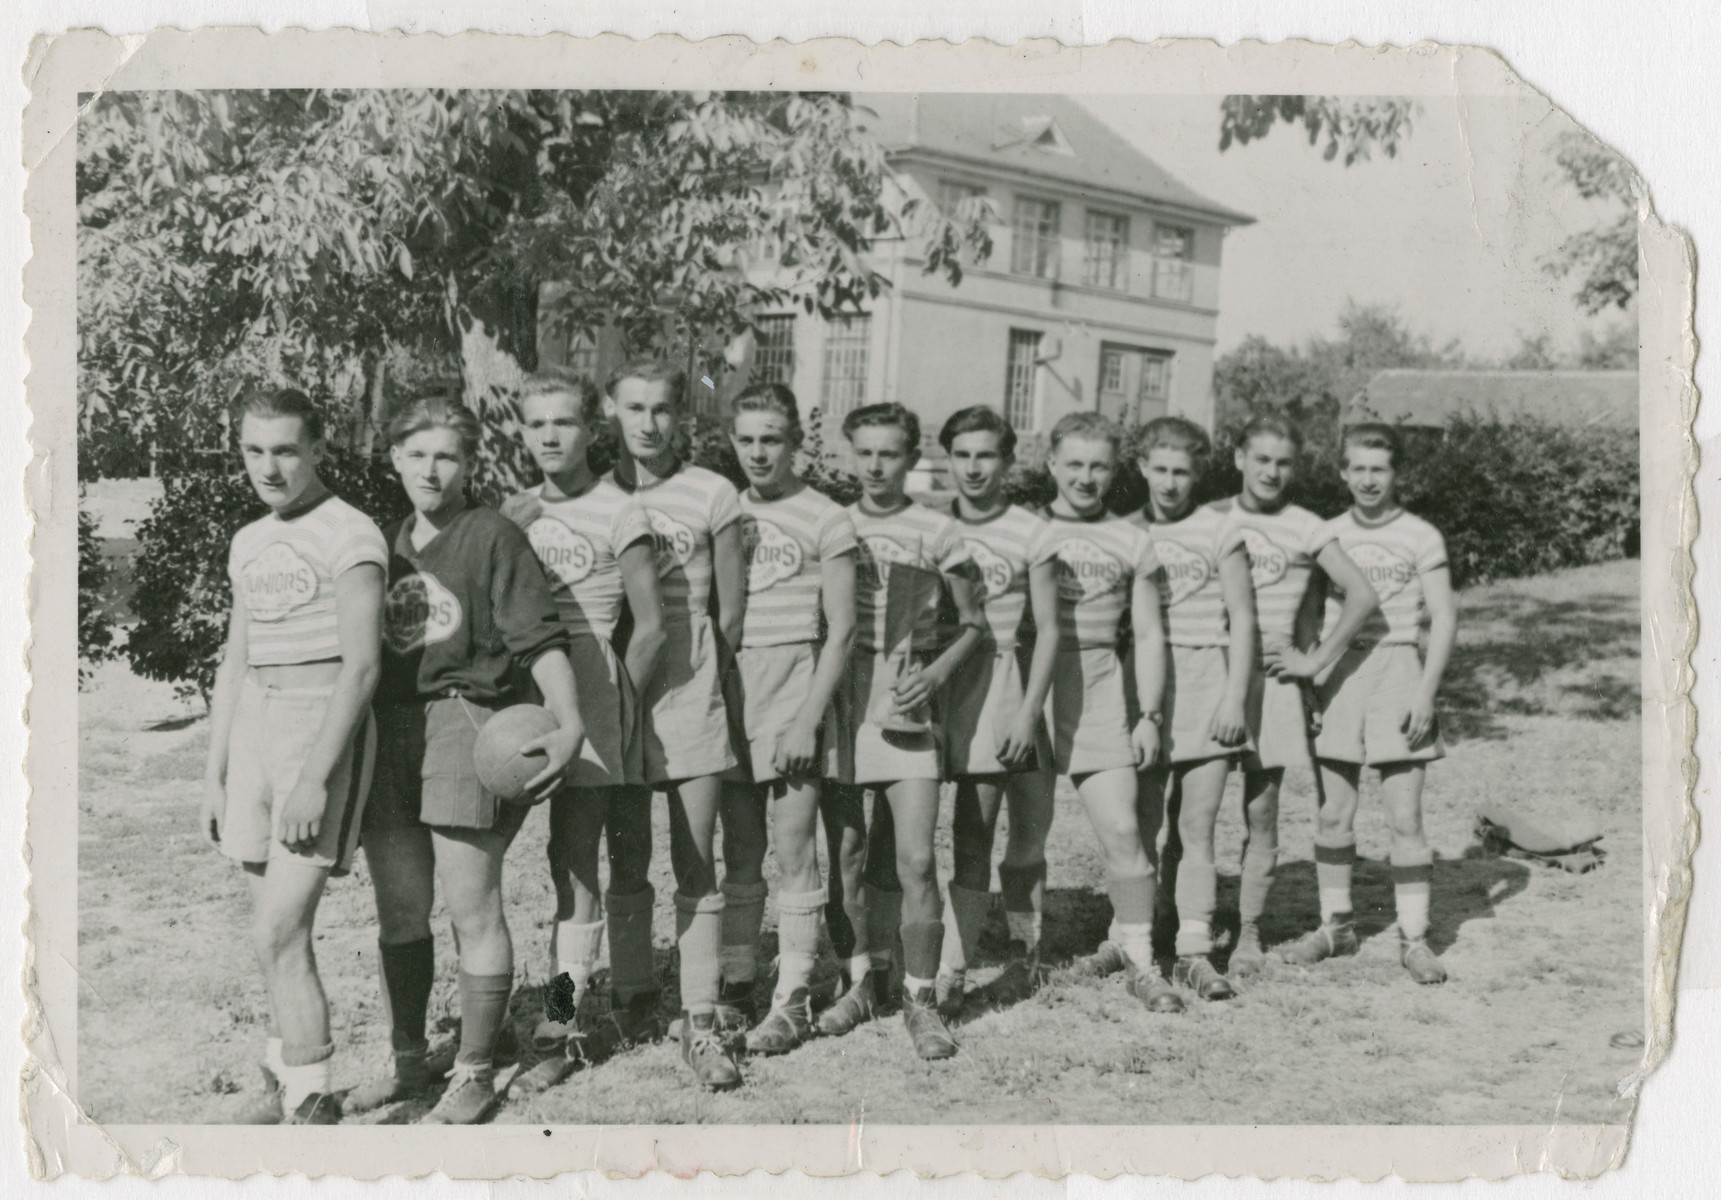 Group portrait of the soccer team of the Aglasterhausen postwar children's home.  Sziku Smilovic is pictured fifth from the right.